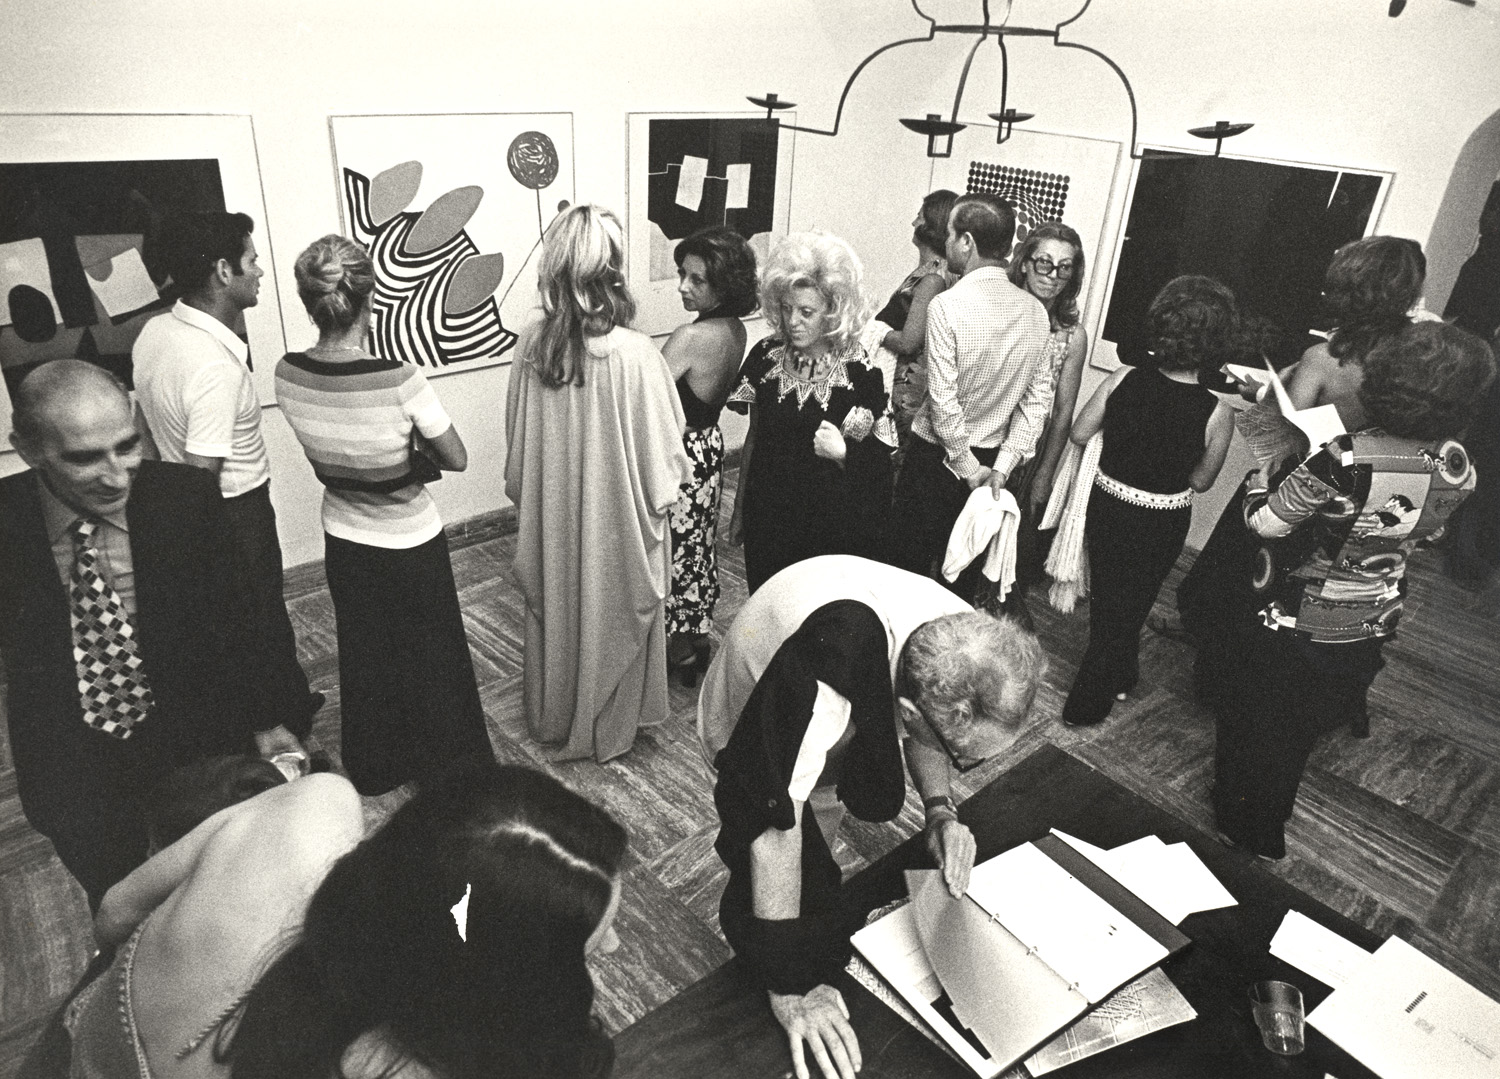 Villa Orlandi, Mostra di Grafica (Graphic Art Exhibition), 1973 (Photo Luciano D'Alessandro)